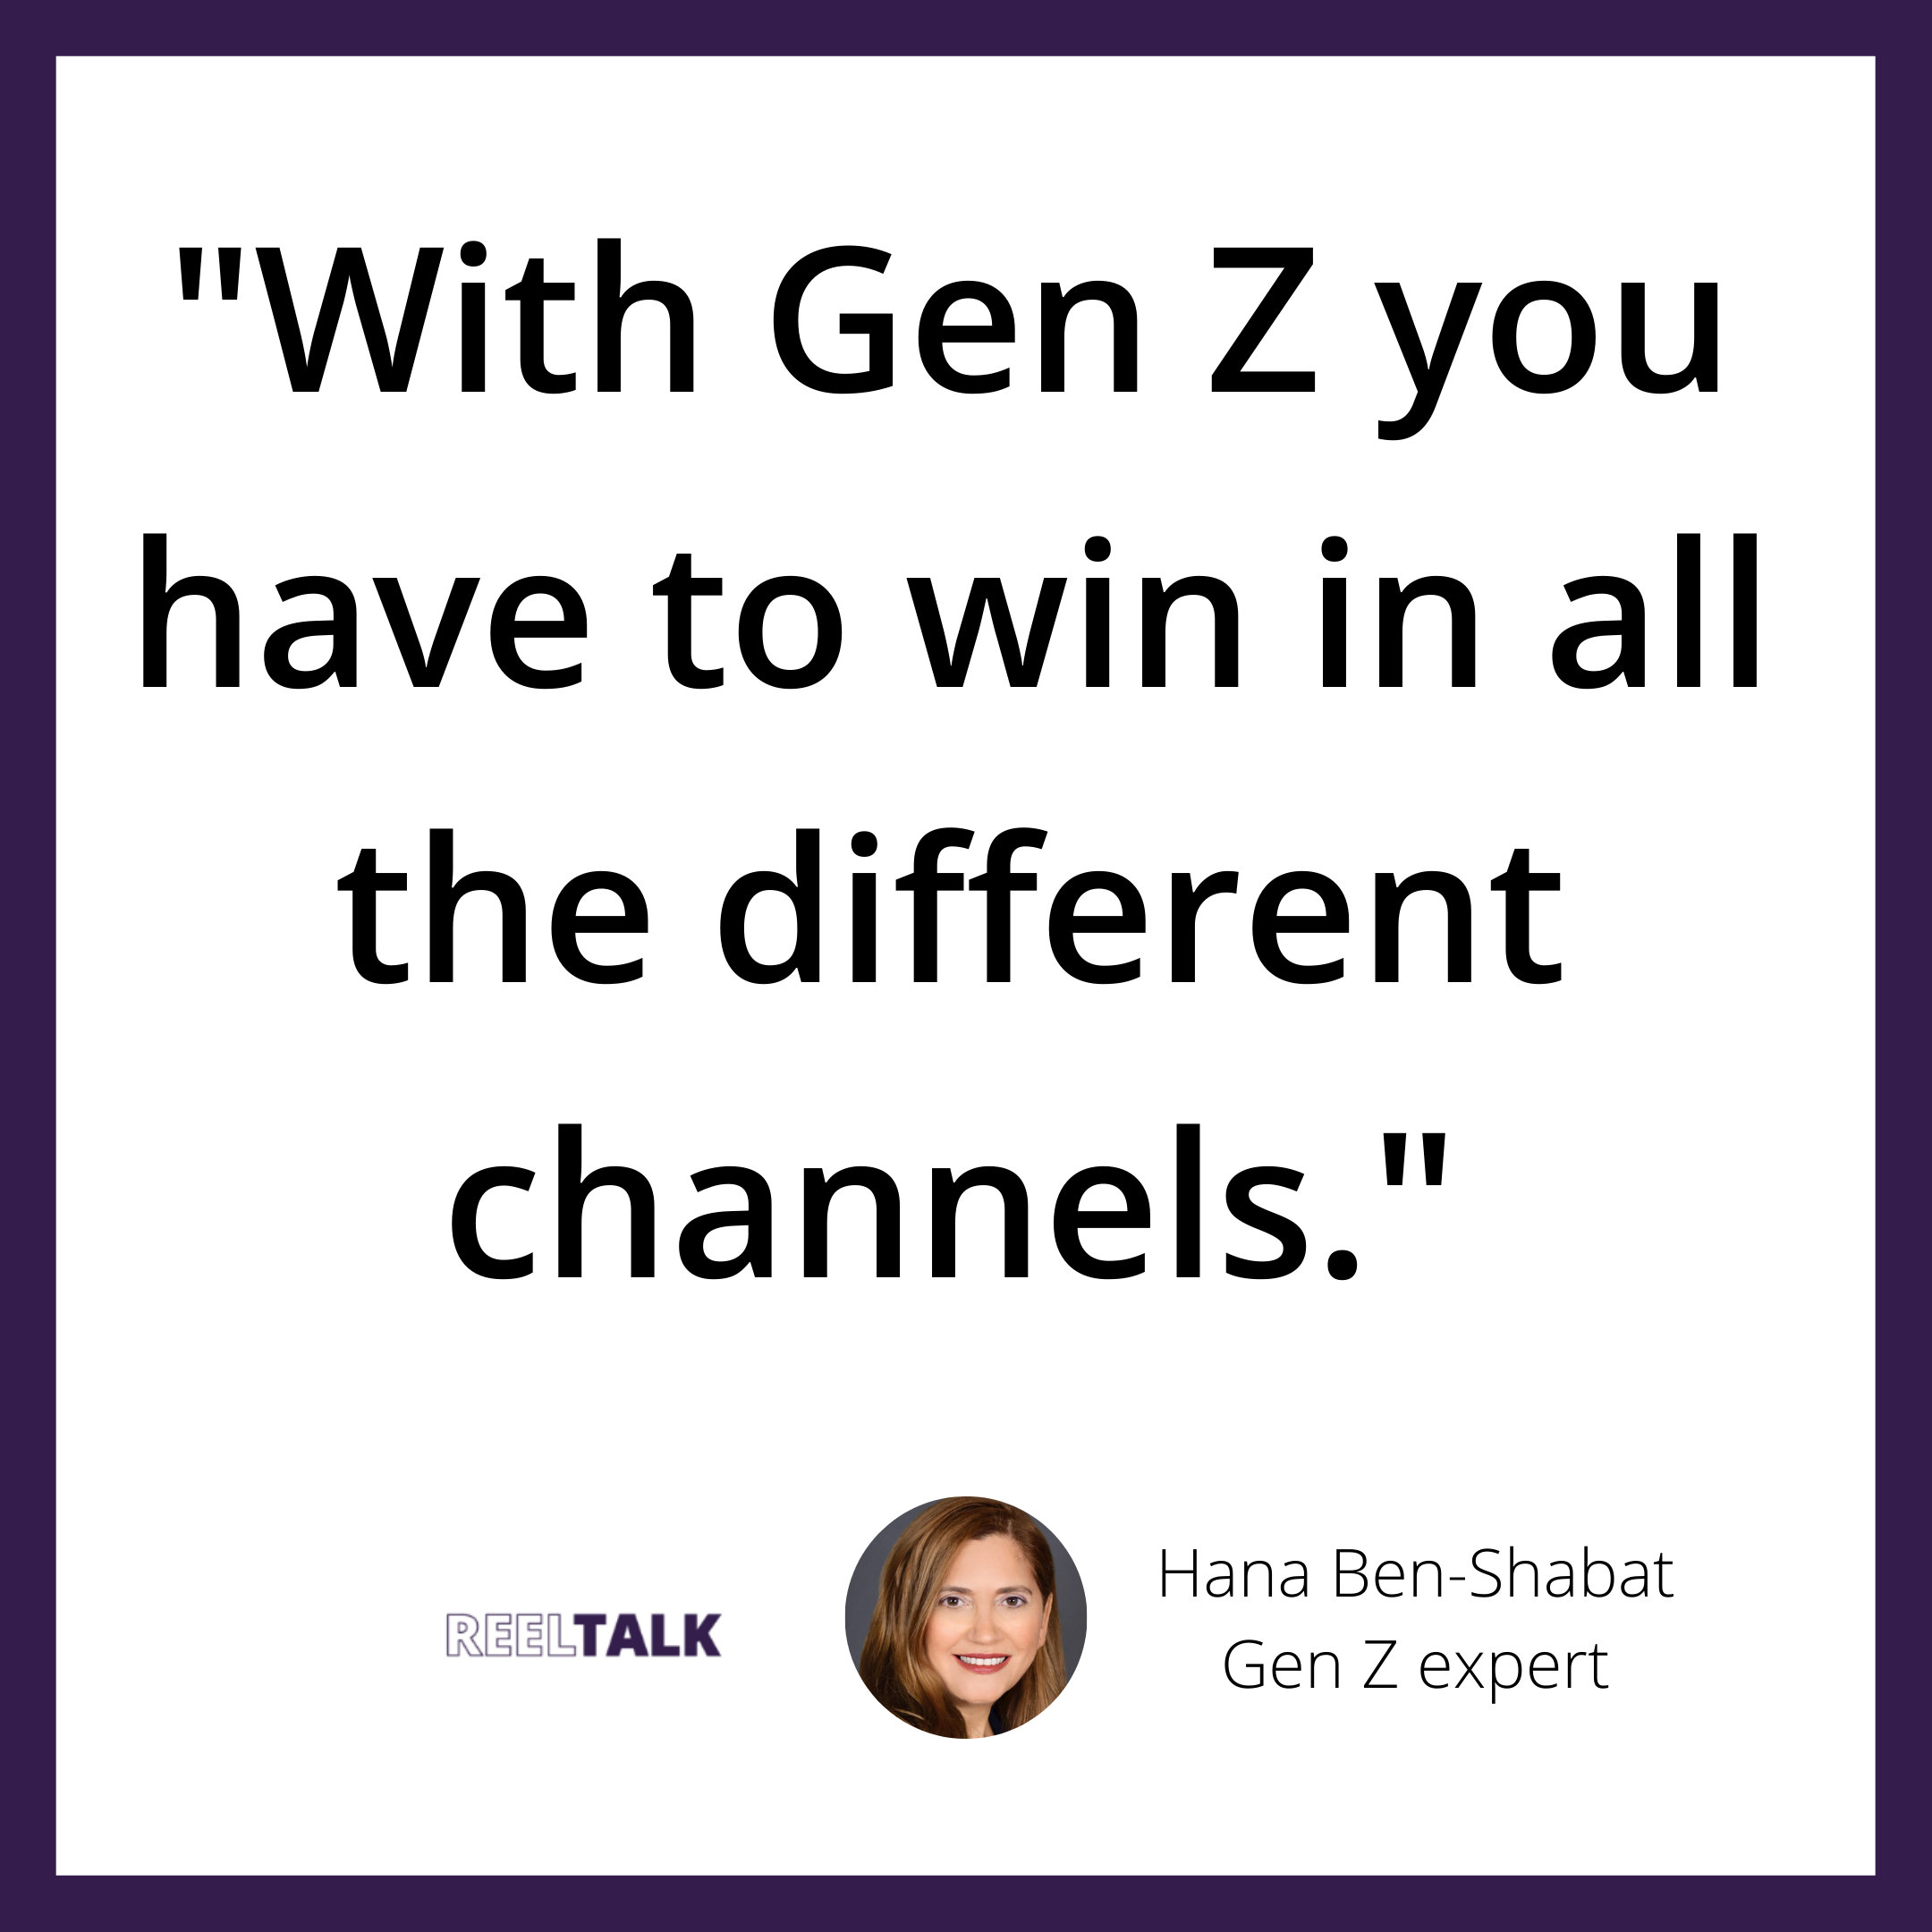 With Gen Z you have to win in all the different channels.